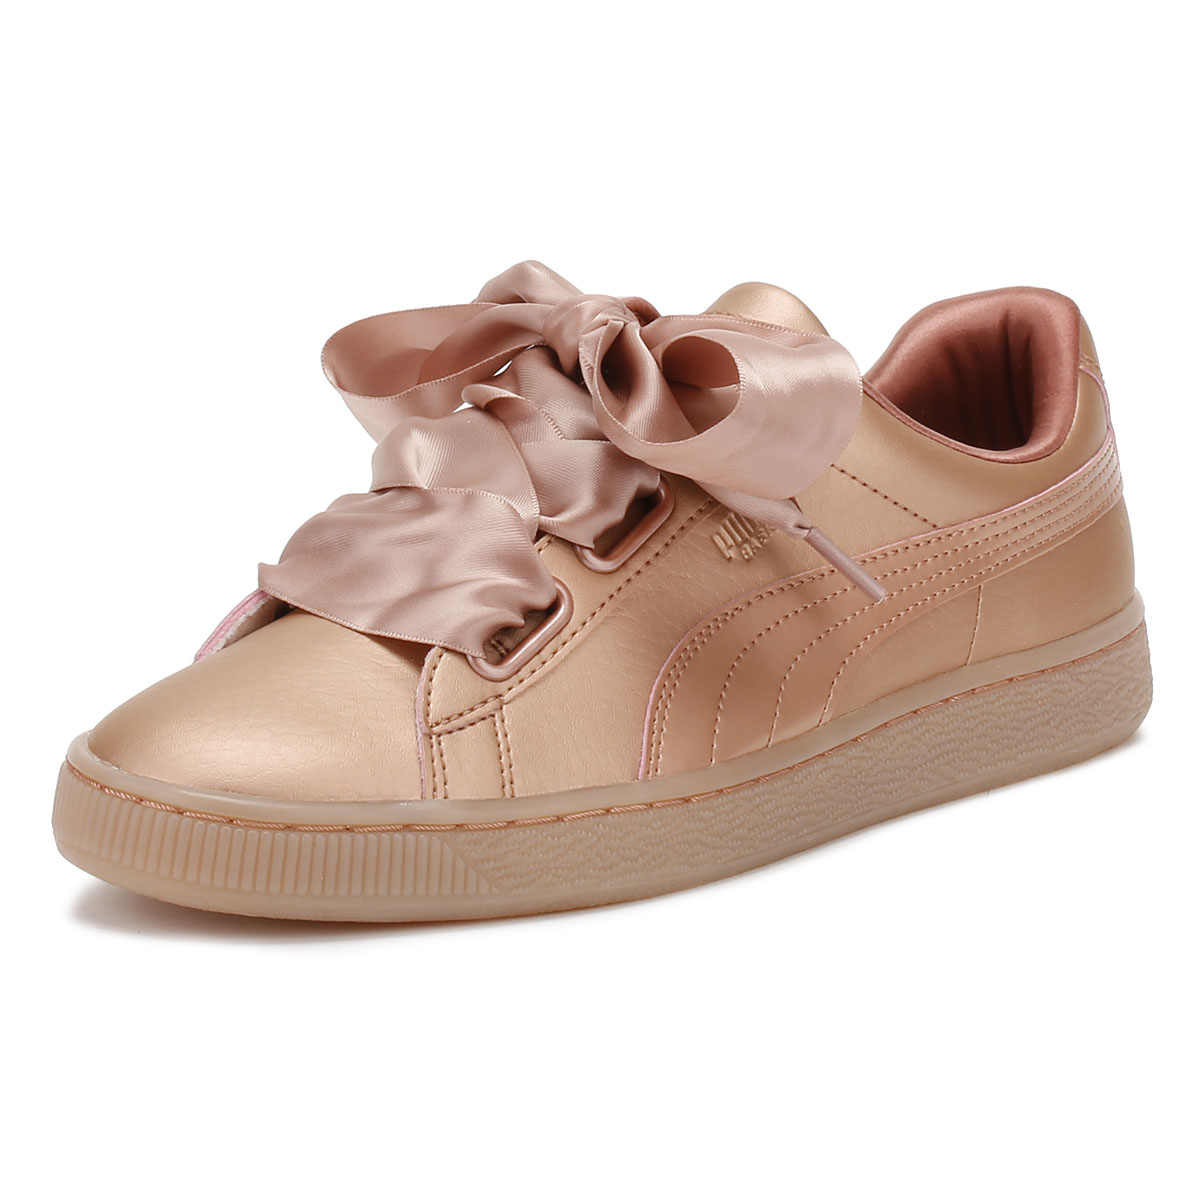 32f862a1d1a Details about PUMA Womens Copper Pink Trainers Basket Heart Patent Leather  Ladies Shoes